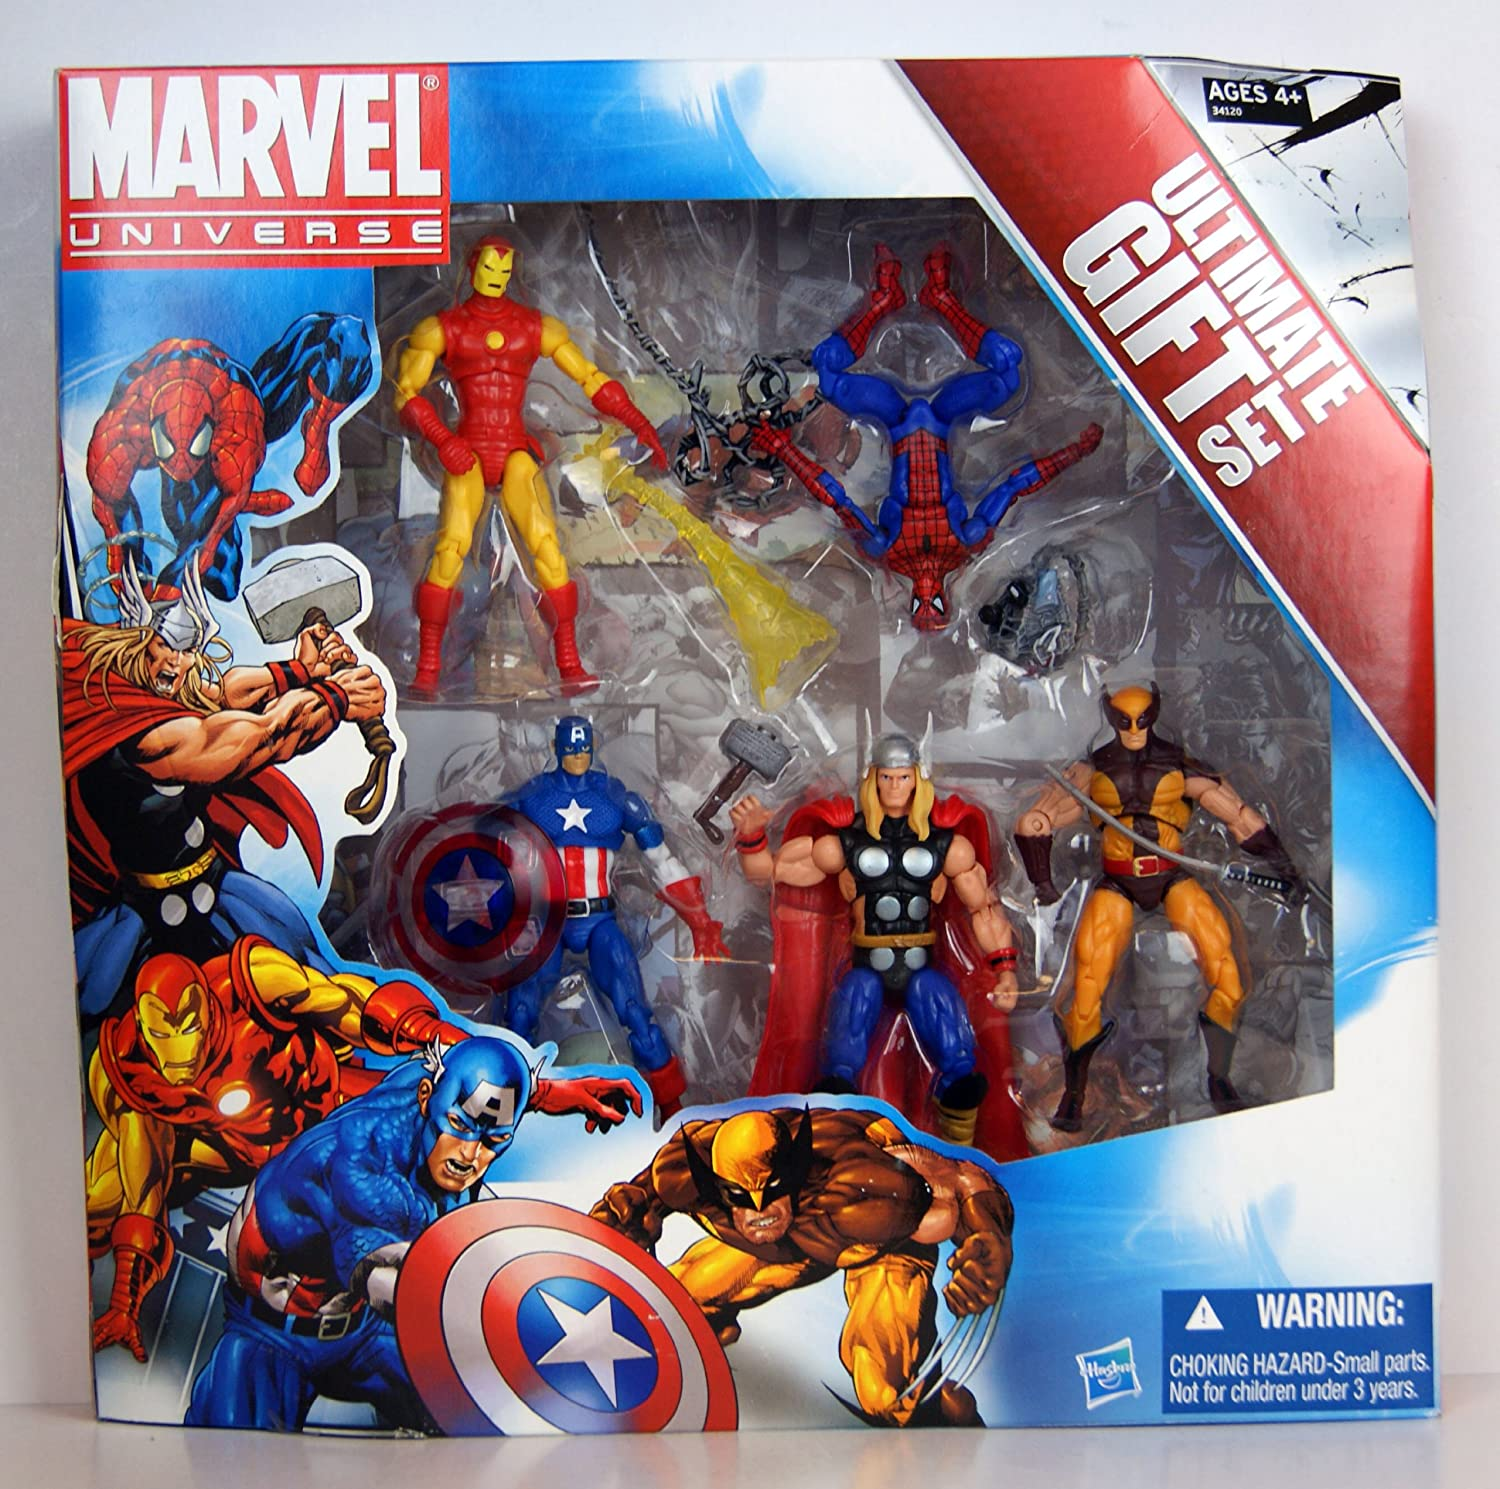 Marvel Universe – 3 3/4 Inch Action Figure 5-Pack – Avengers Ultimate Gift Set – 5 Figuren : SpiderMan, Wolverine, Iron Man, Thor, Captain America -Hasbro bestellen